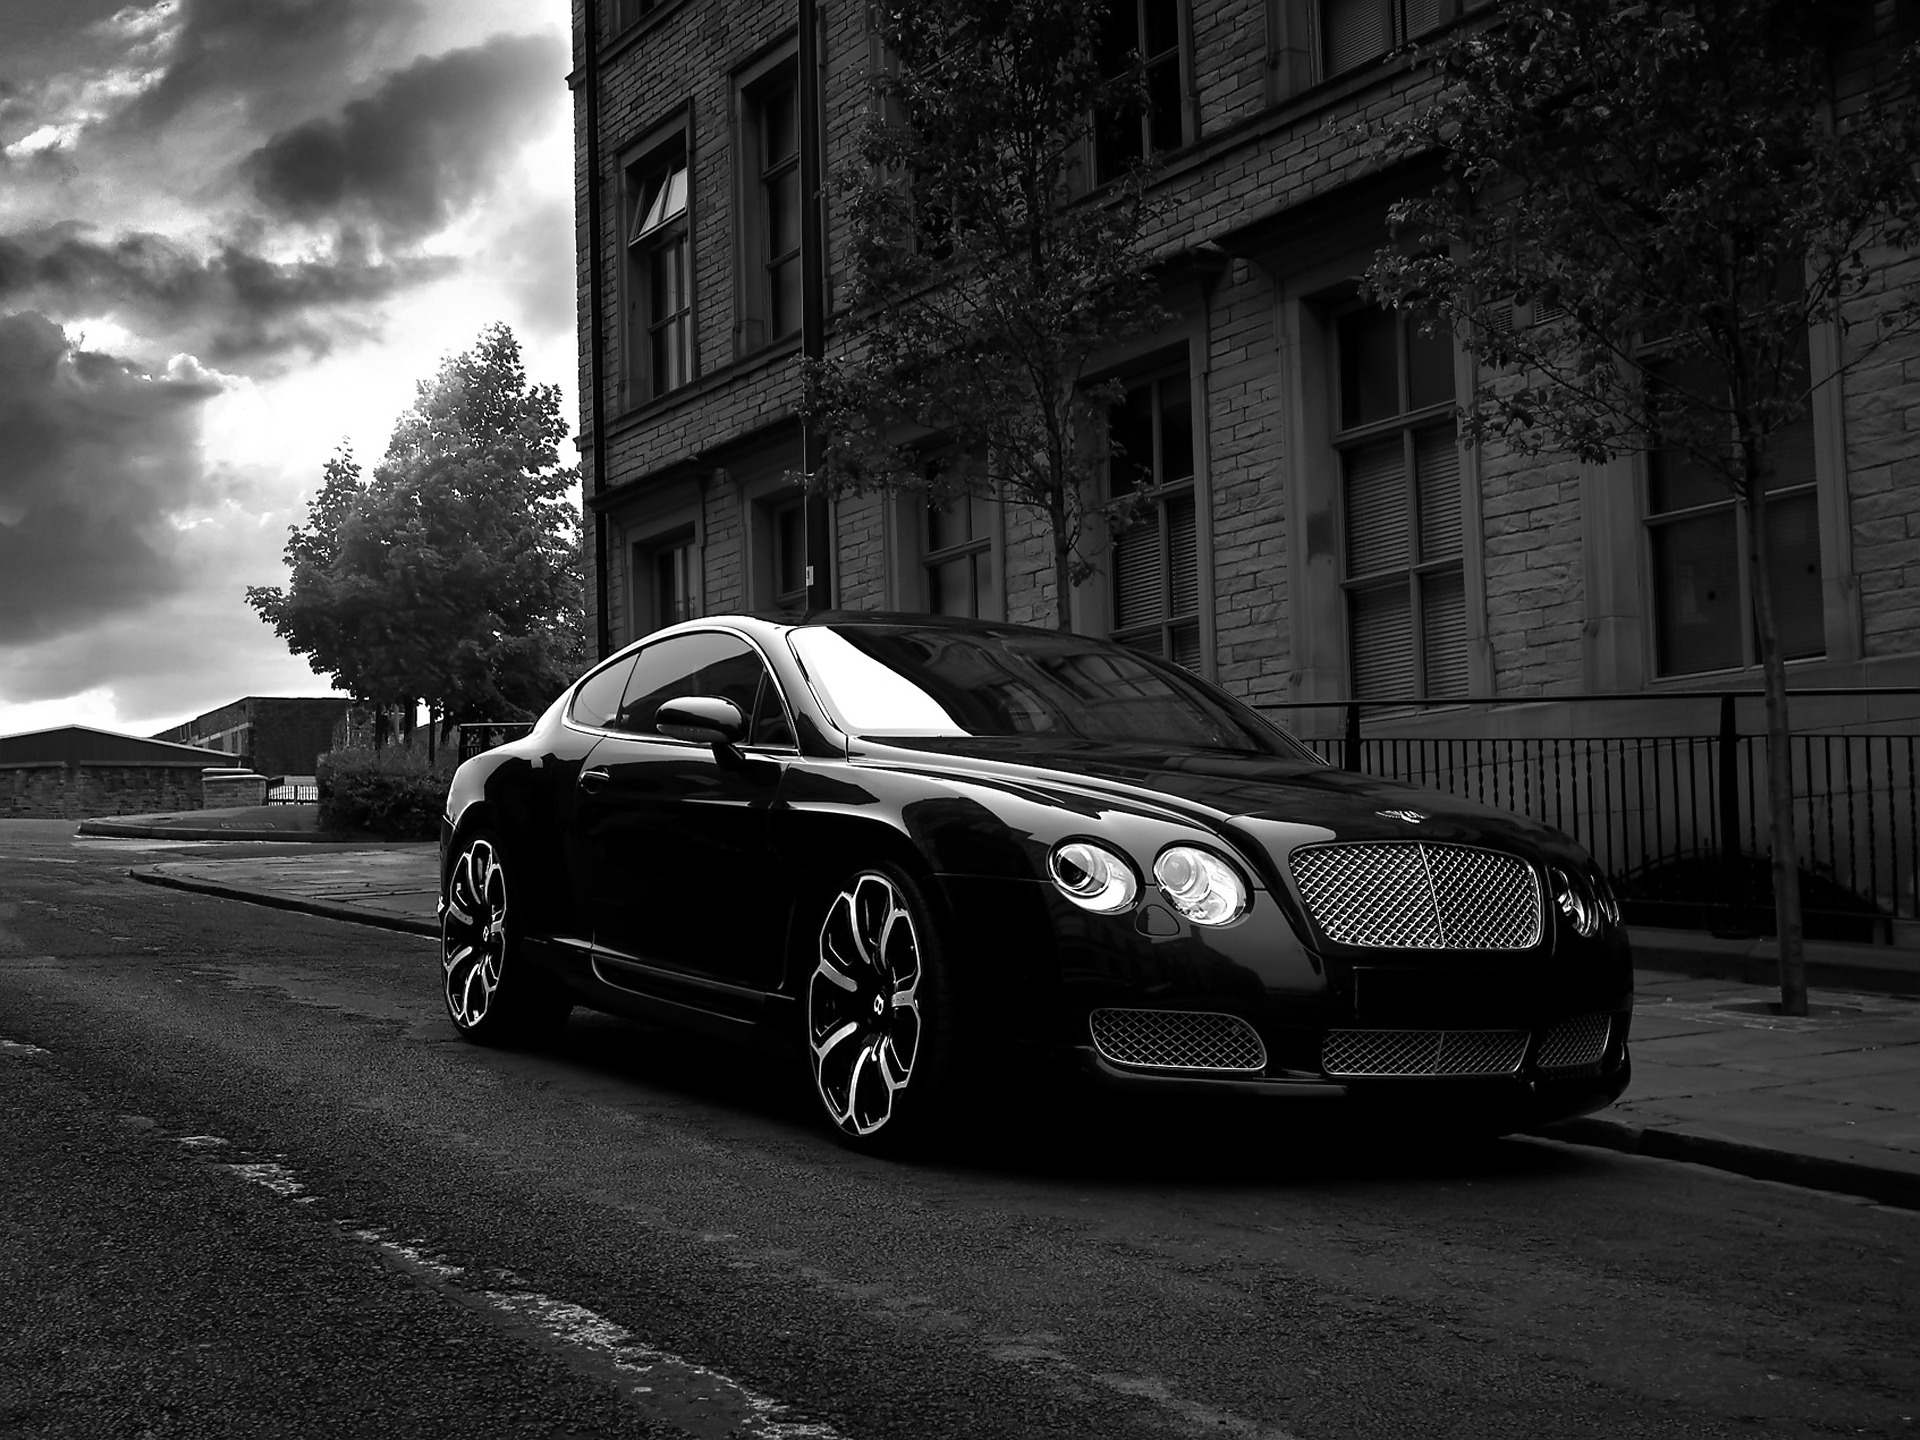 Bentley Car Wallpaper >> Kahn Bentley Gts Wallpaper Bentley Cars Wallpapers In Jpg Format For